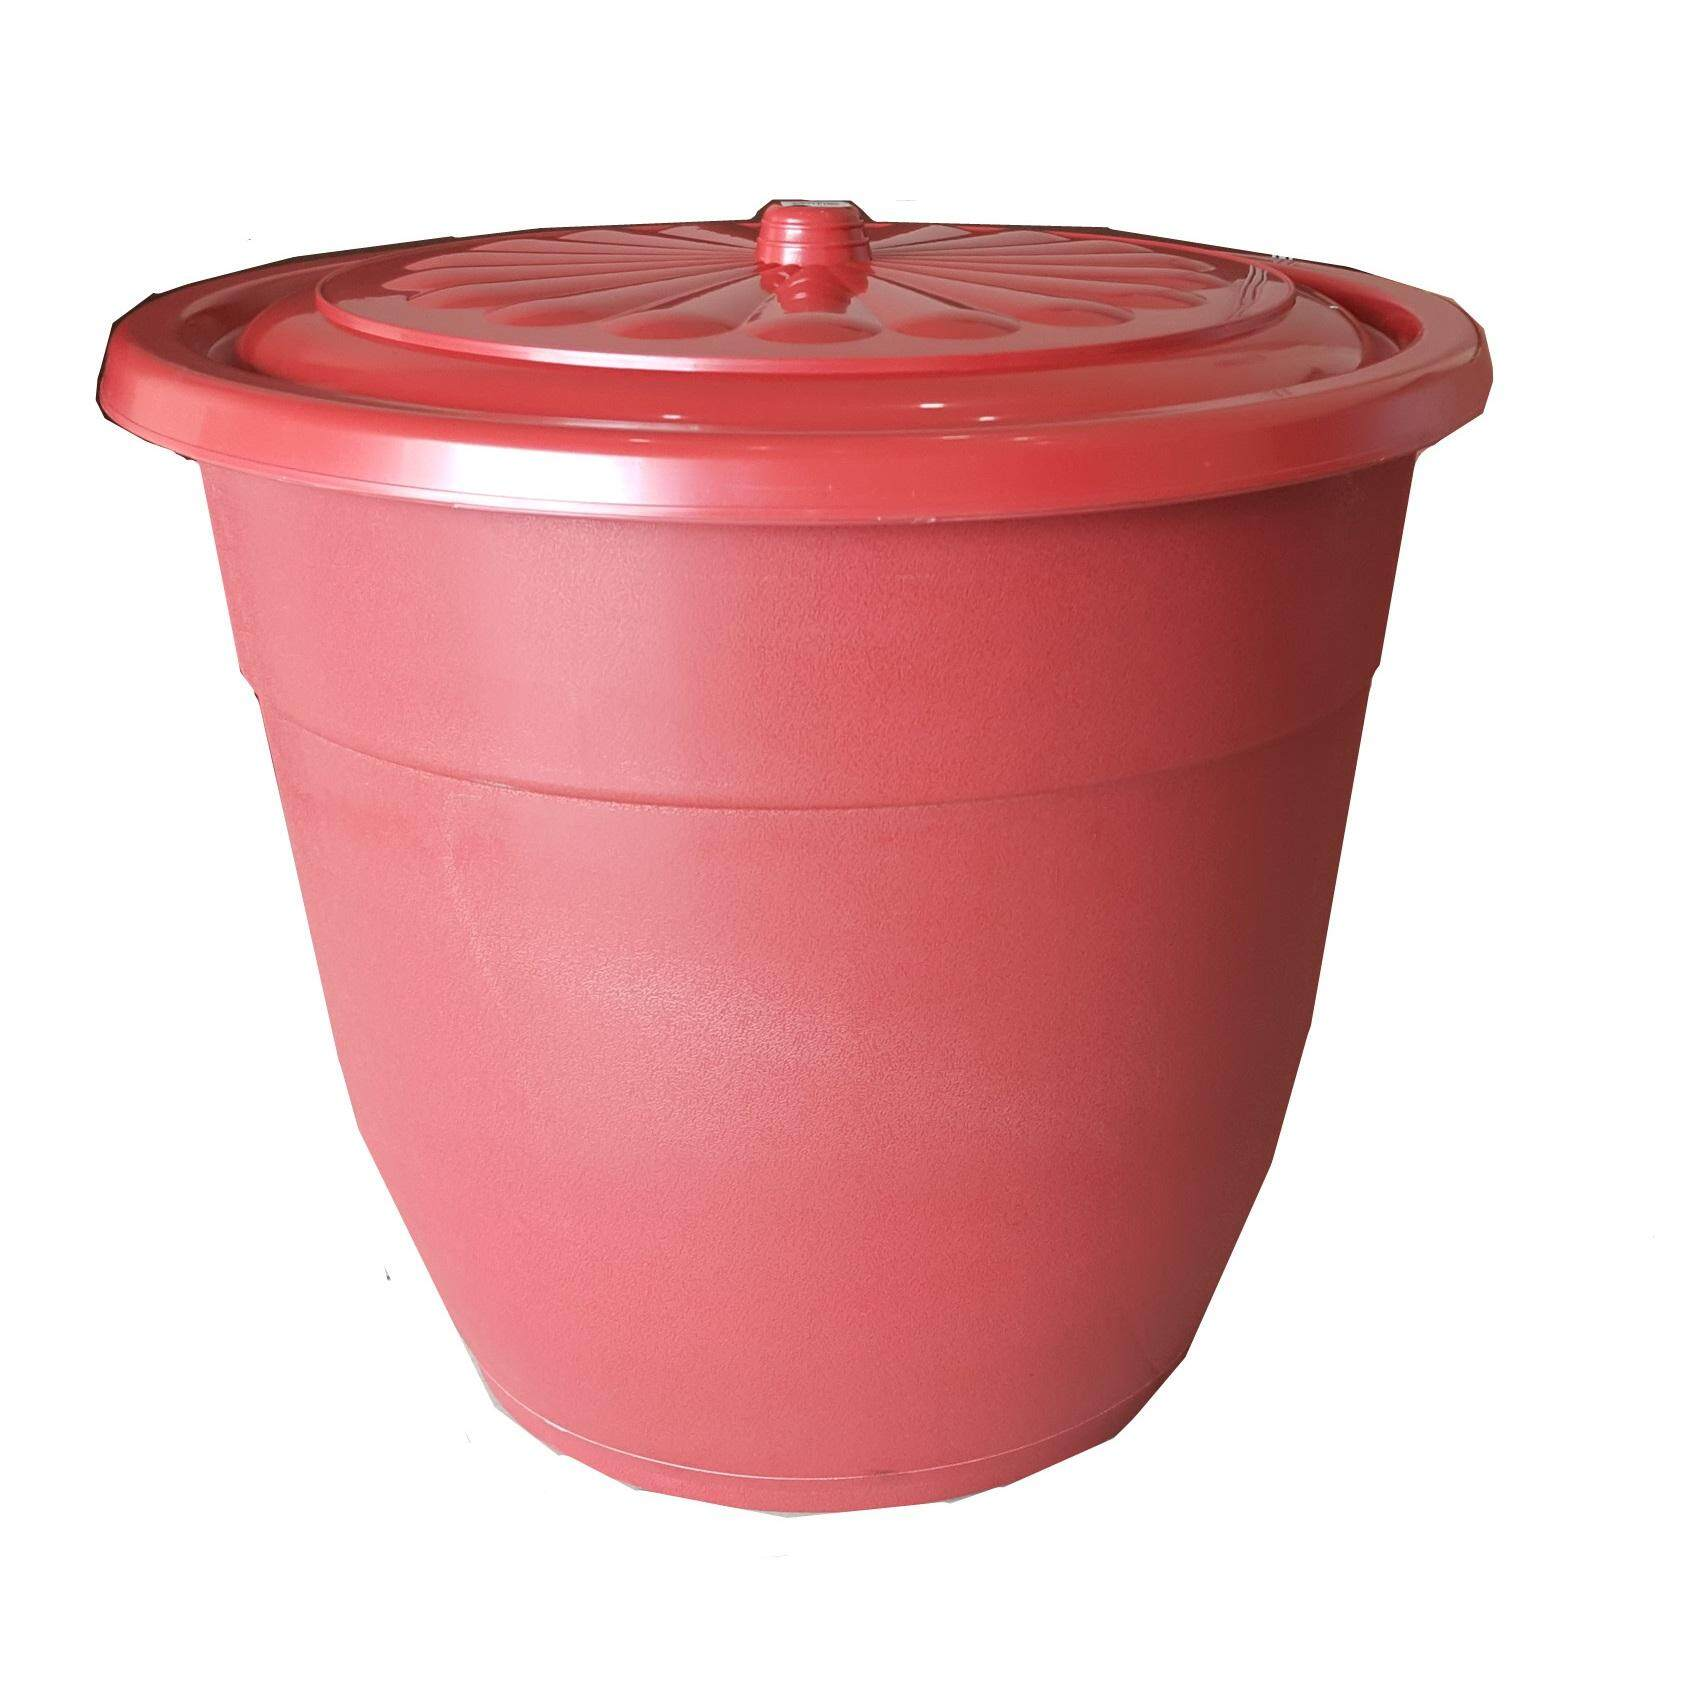 (OW) 13 Gallon or 50 Lit Multipurpose Big Pail with Cover for storing Water